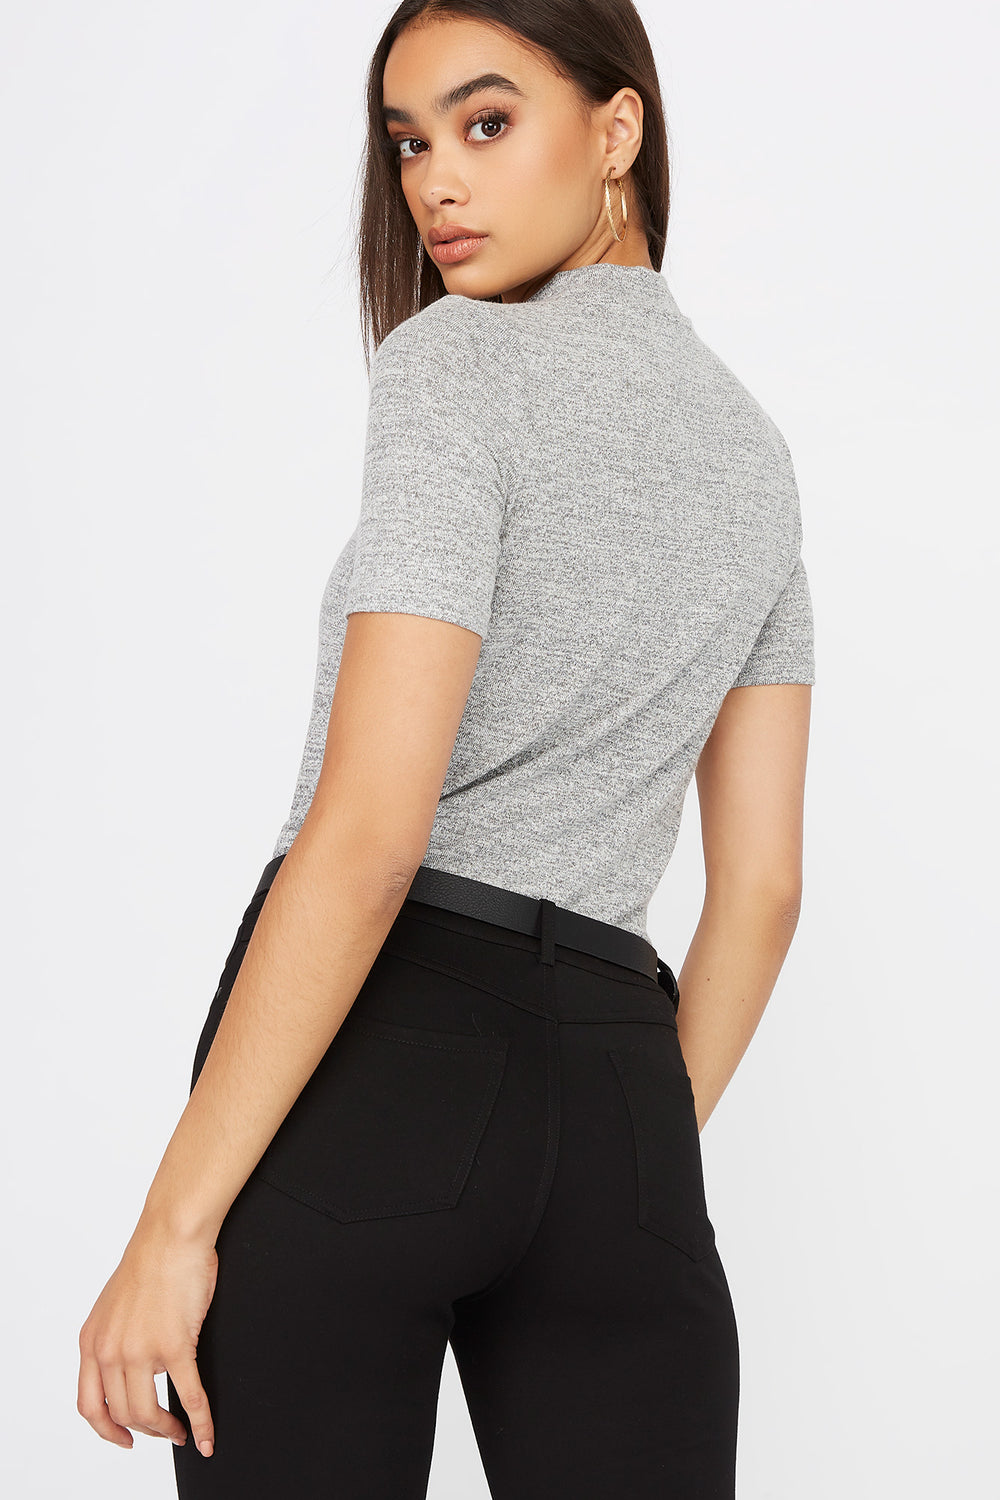 Heather Mock Neck Short Sleeve Heather Grey